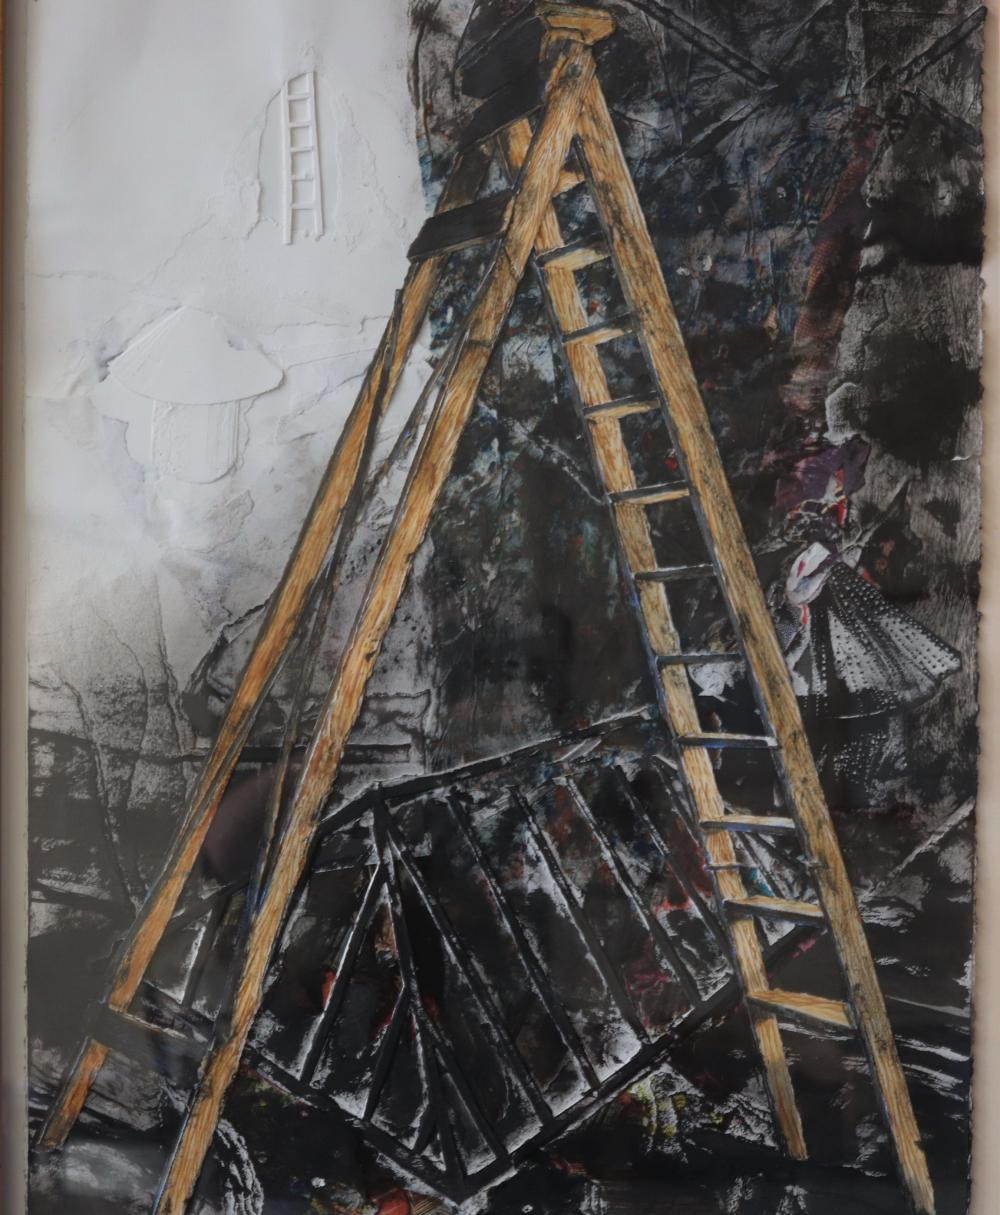 BRUCE REYNOLDS ROOFTOP C1990 MIXED MEDIA ON PAPER 76 X 57.5